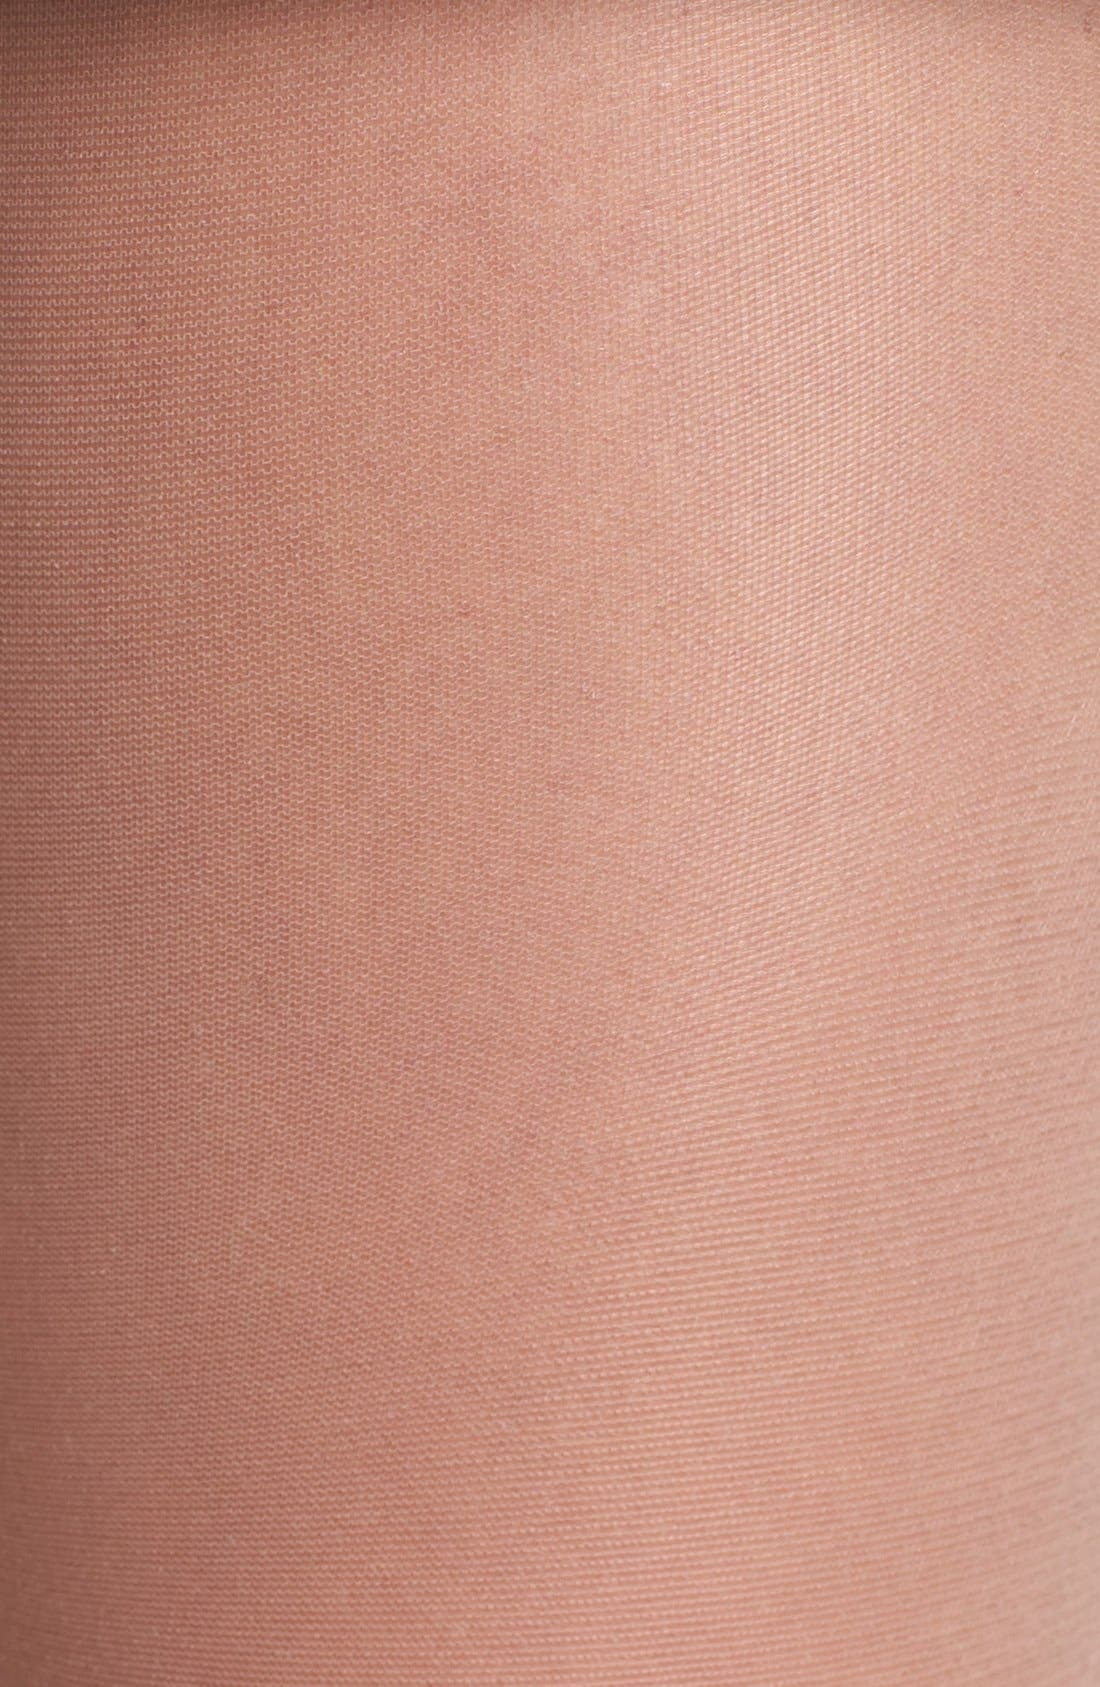 French Cut Sheer Pantyhose,                             Alternate thumbnail 9, color,